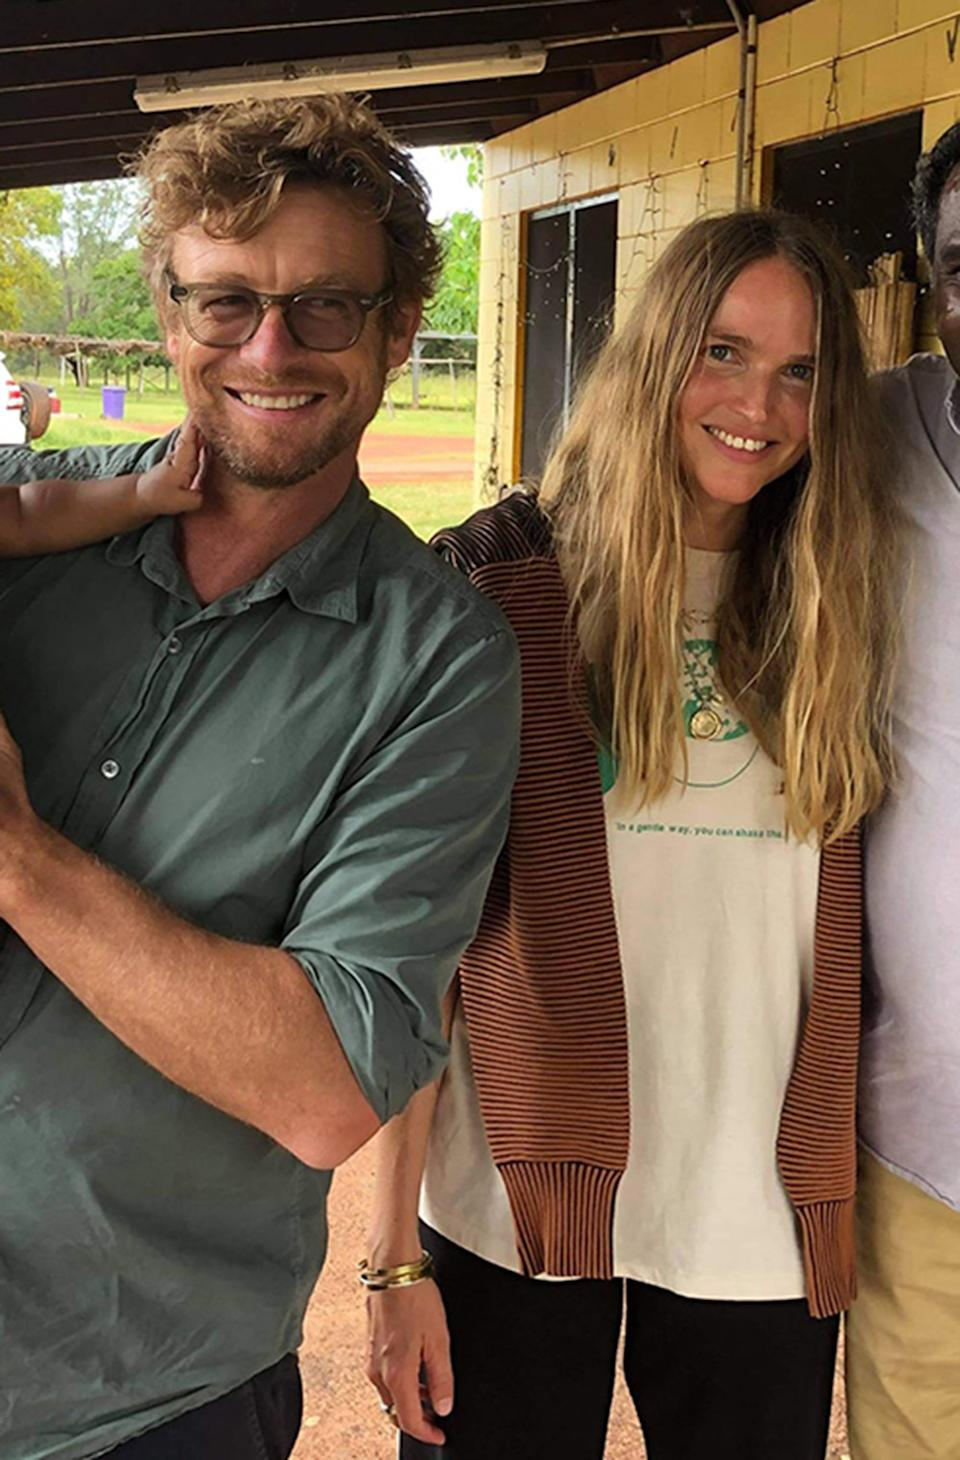 Simon Baker, 51, has made things 'Facebook official' with his new girlfriend Laura May Gibbs, 36. Photo: Facebook.